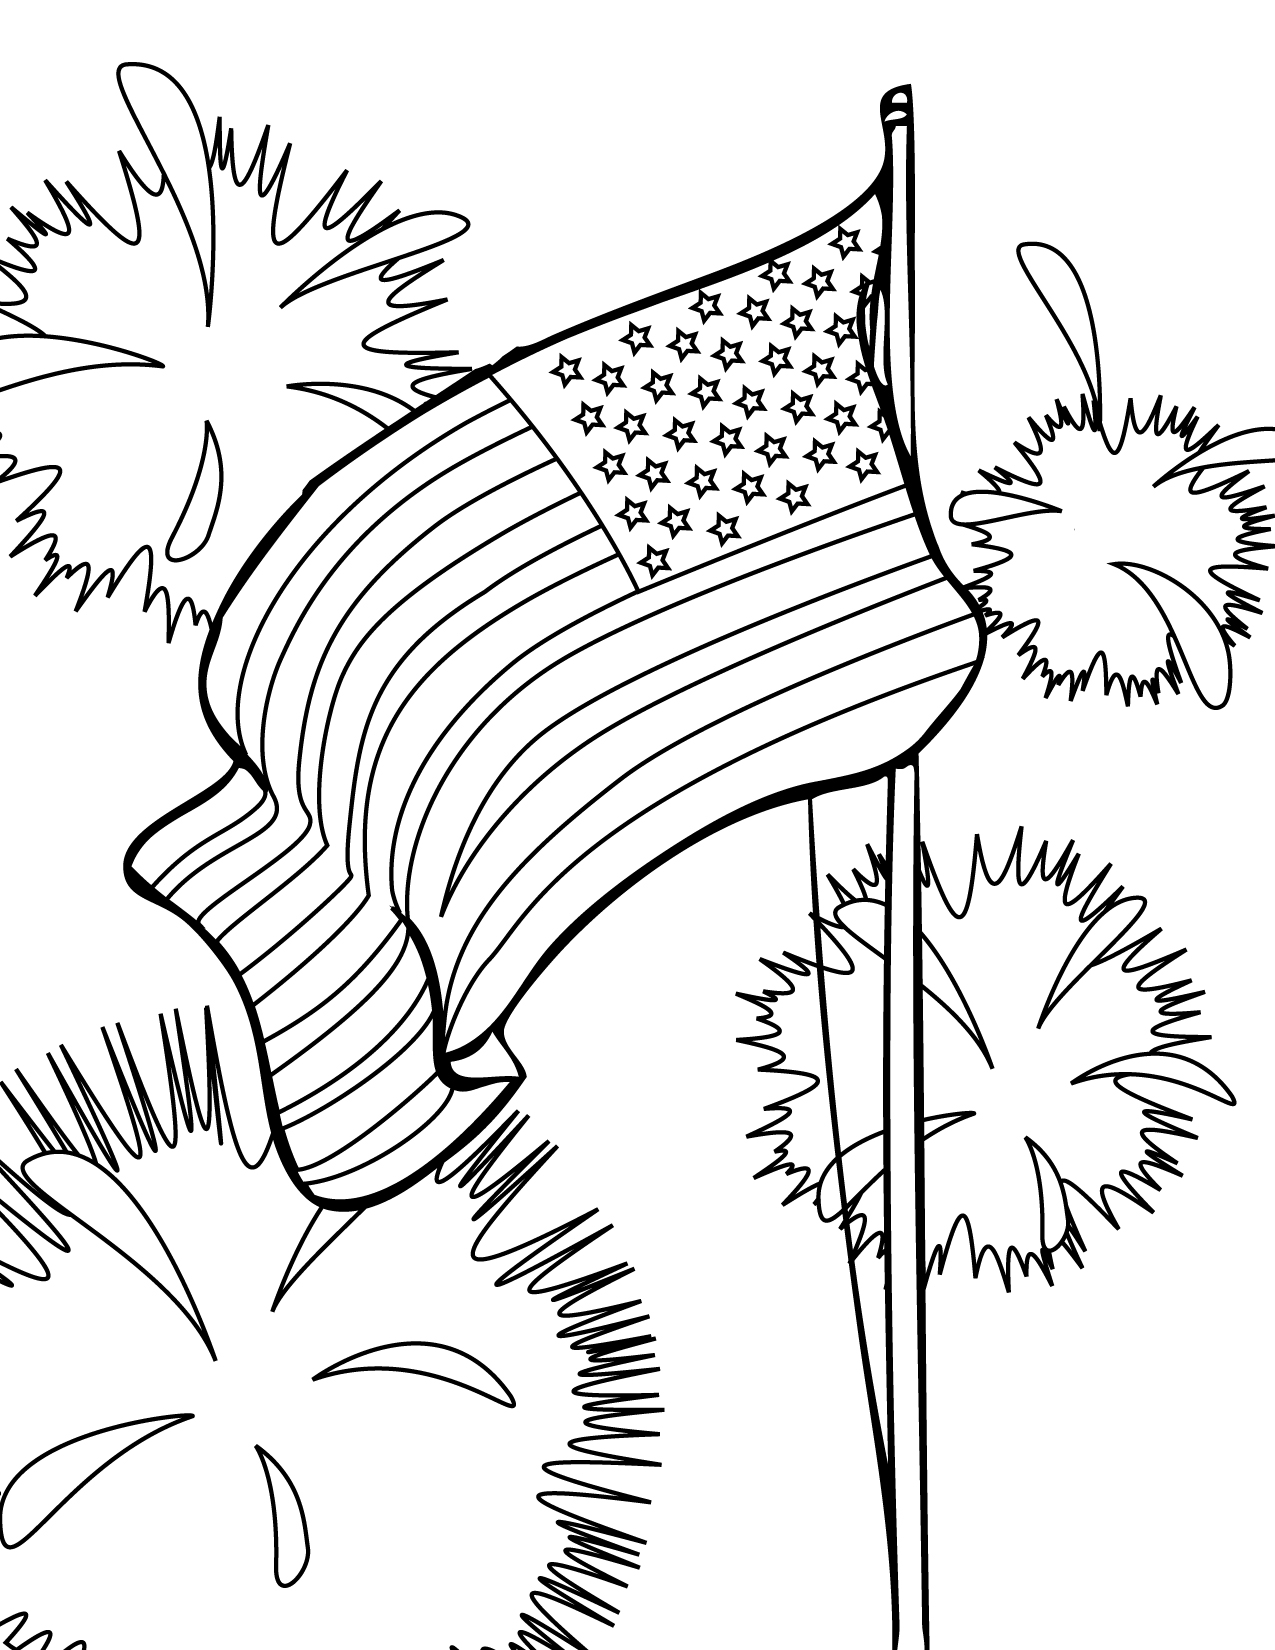 USA clipart for kid printable Pages Coloring For Kids 4th